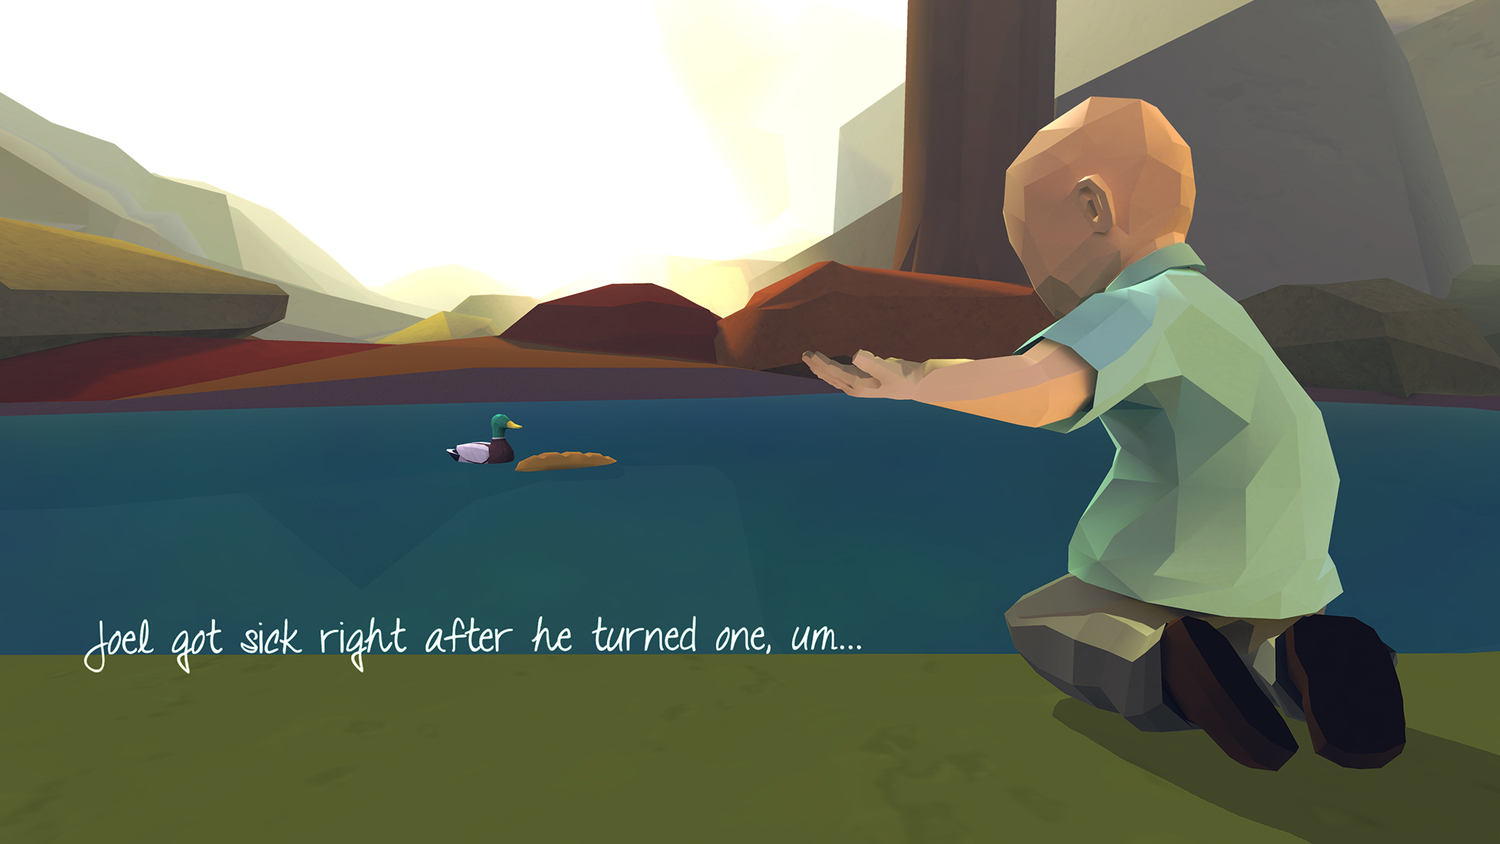 Joel gestures for more bread to throw to a duck in the park. Image courtesy of The Dragon, Cancer and Numinous Games